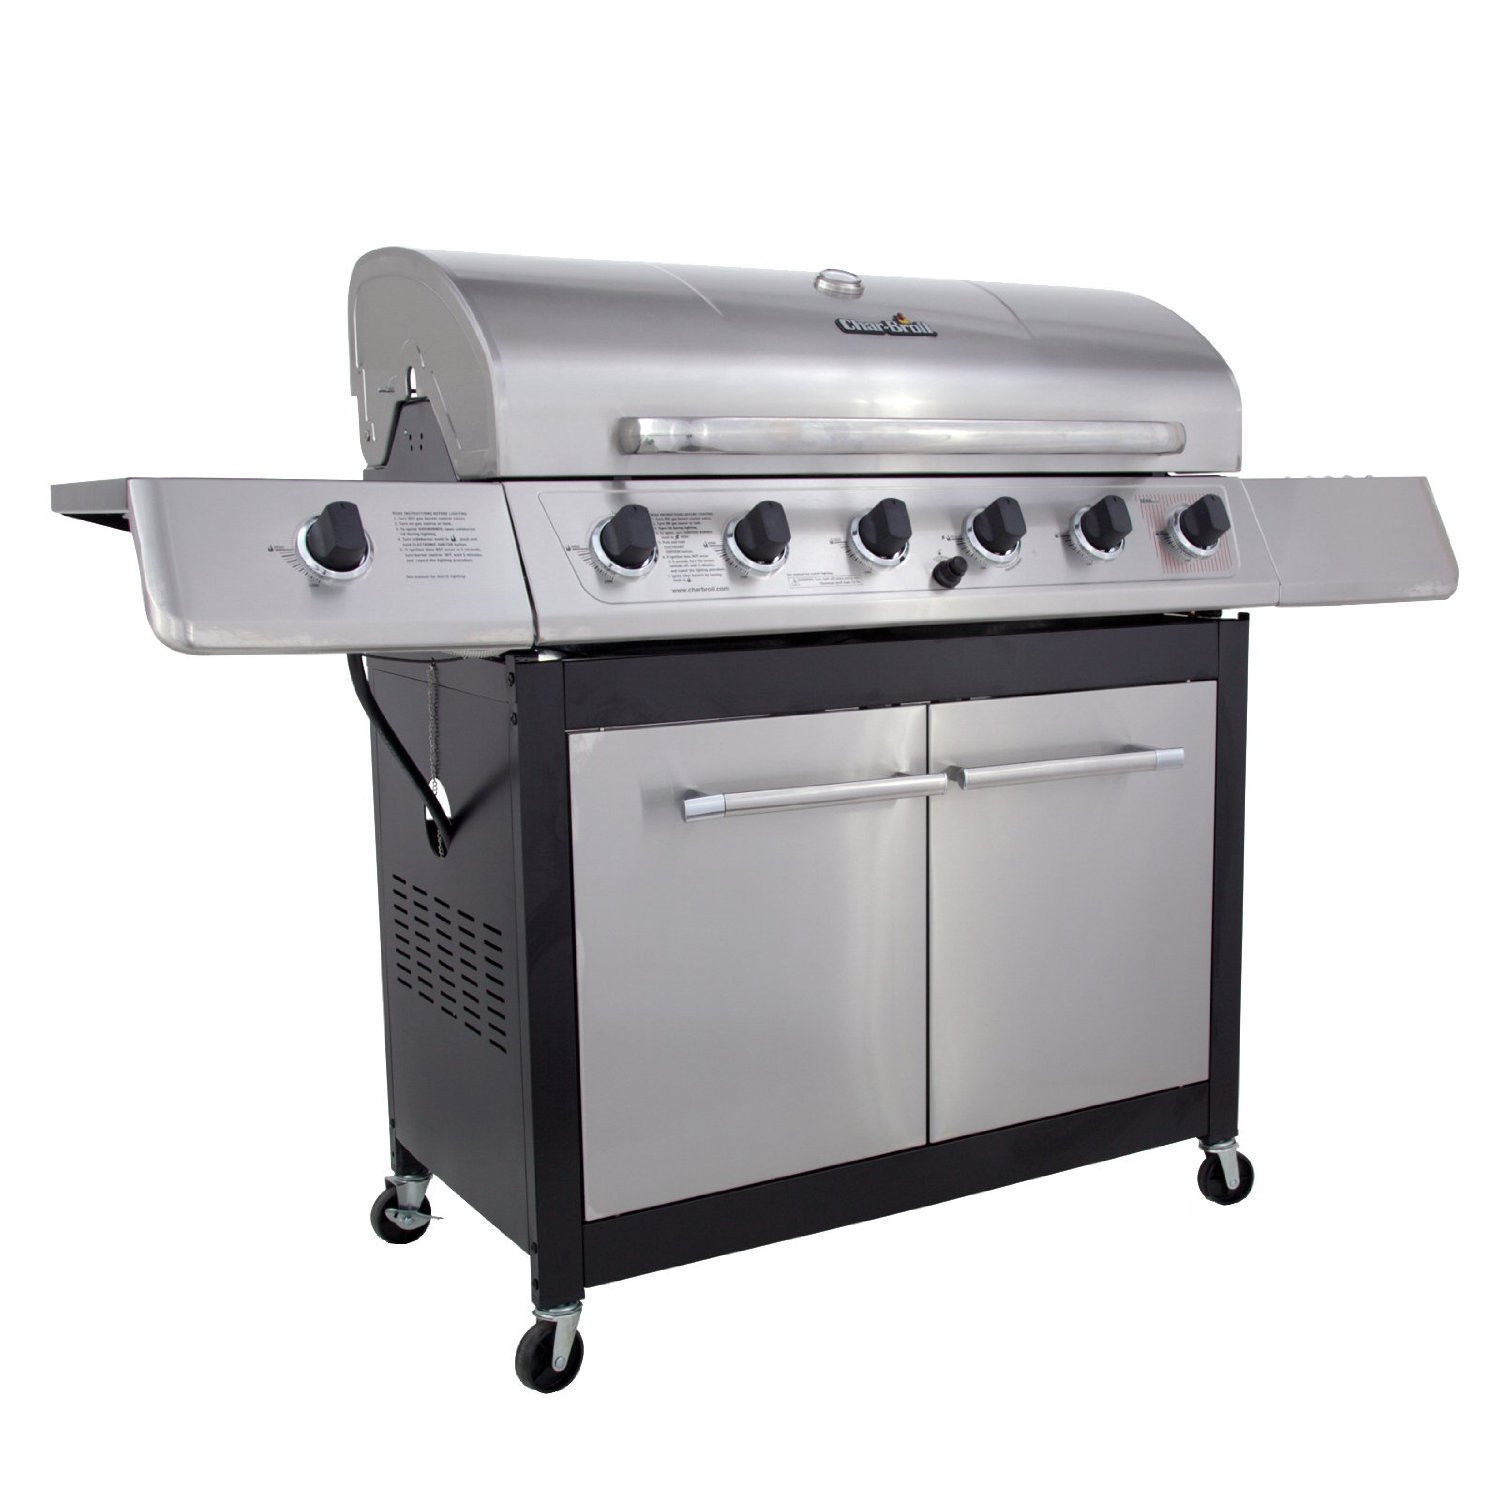 New Stainless Char-Broil 6 Burner Gas Grill Side Burner 65000 BTU BBQ Food Patio